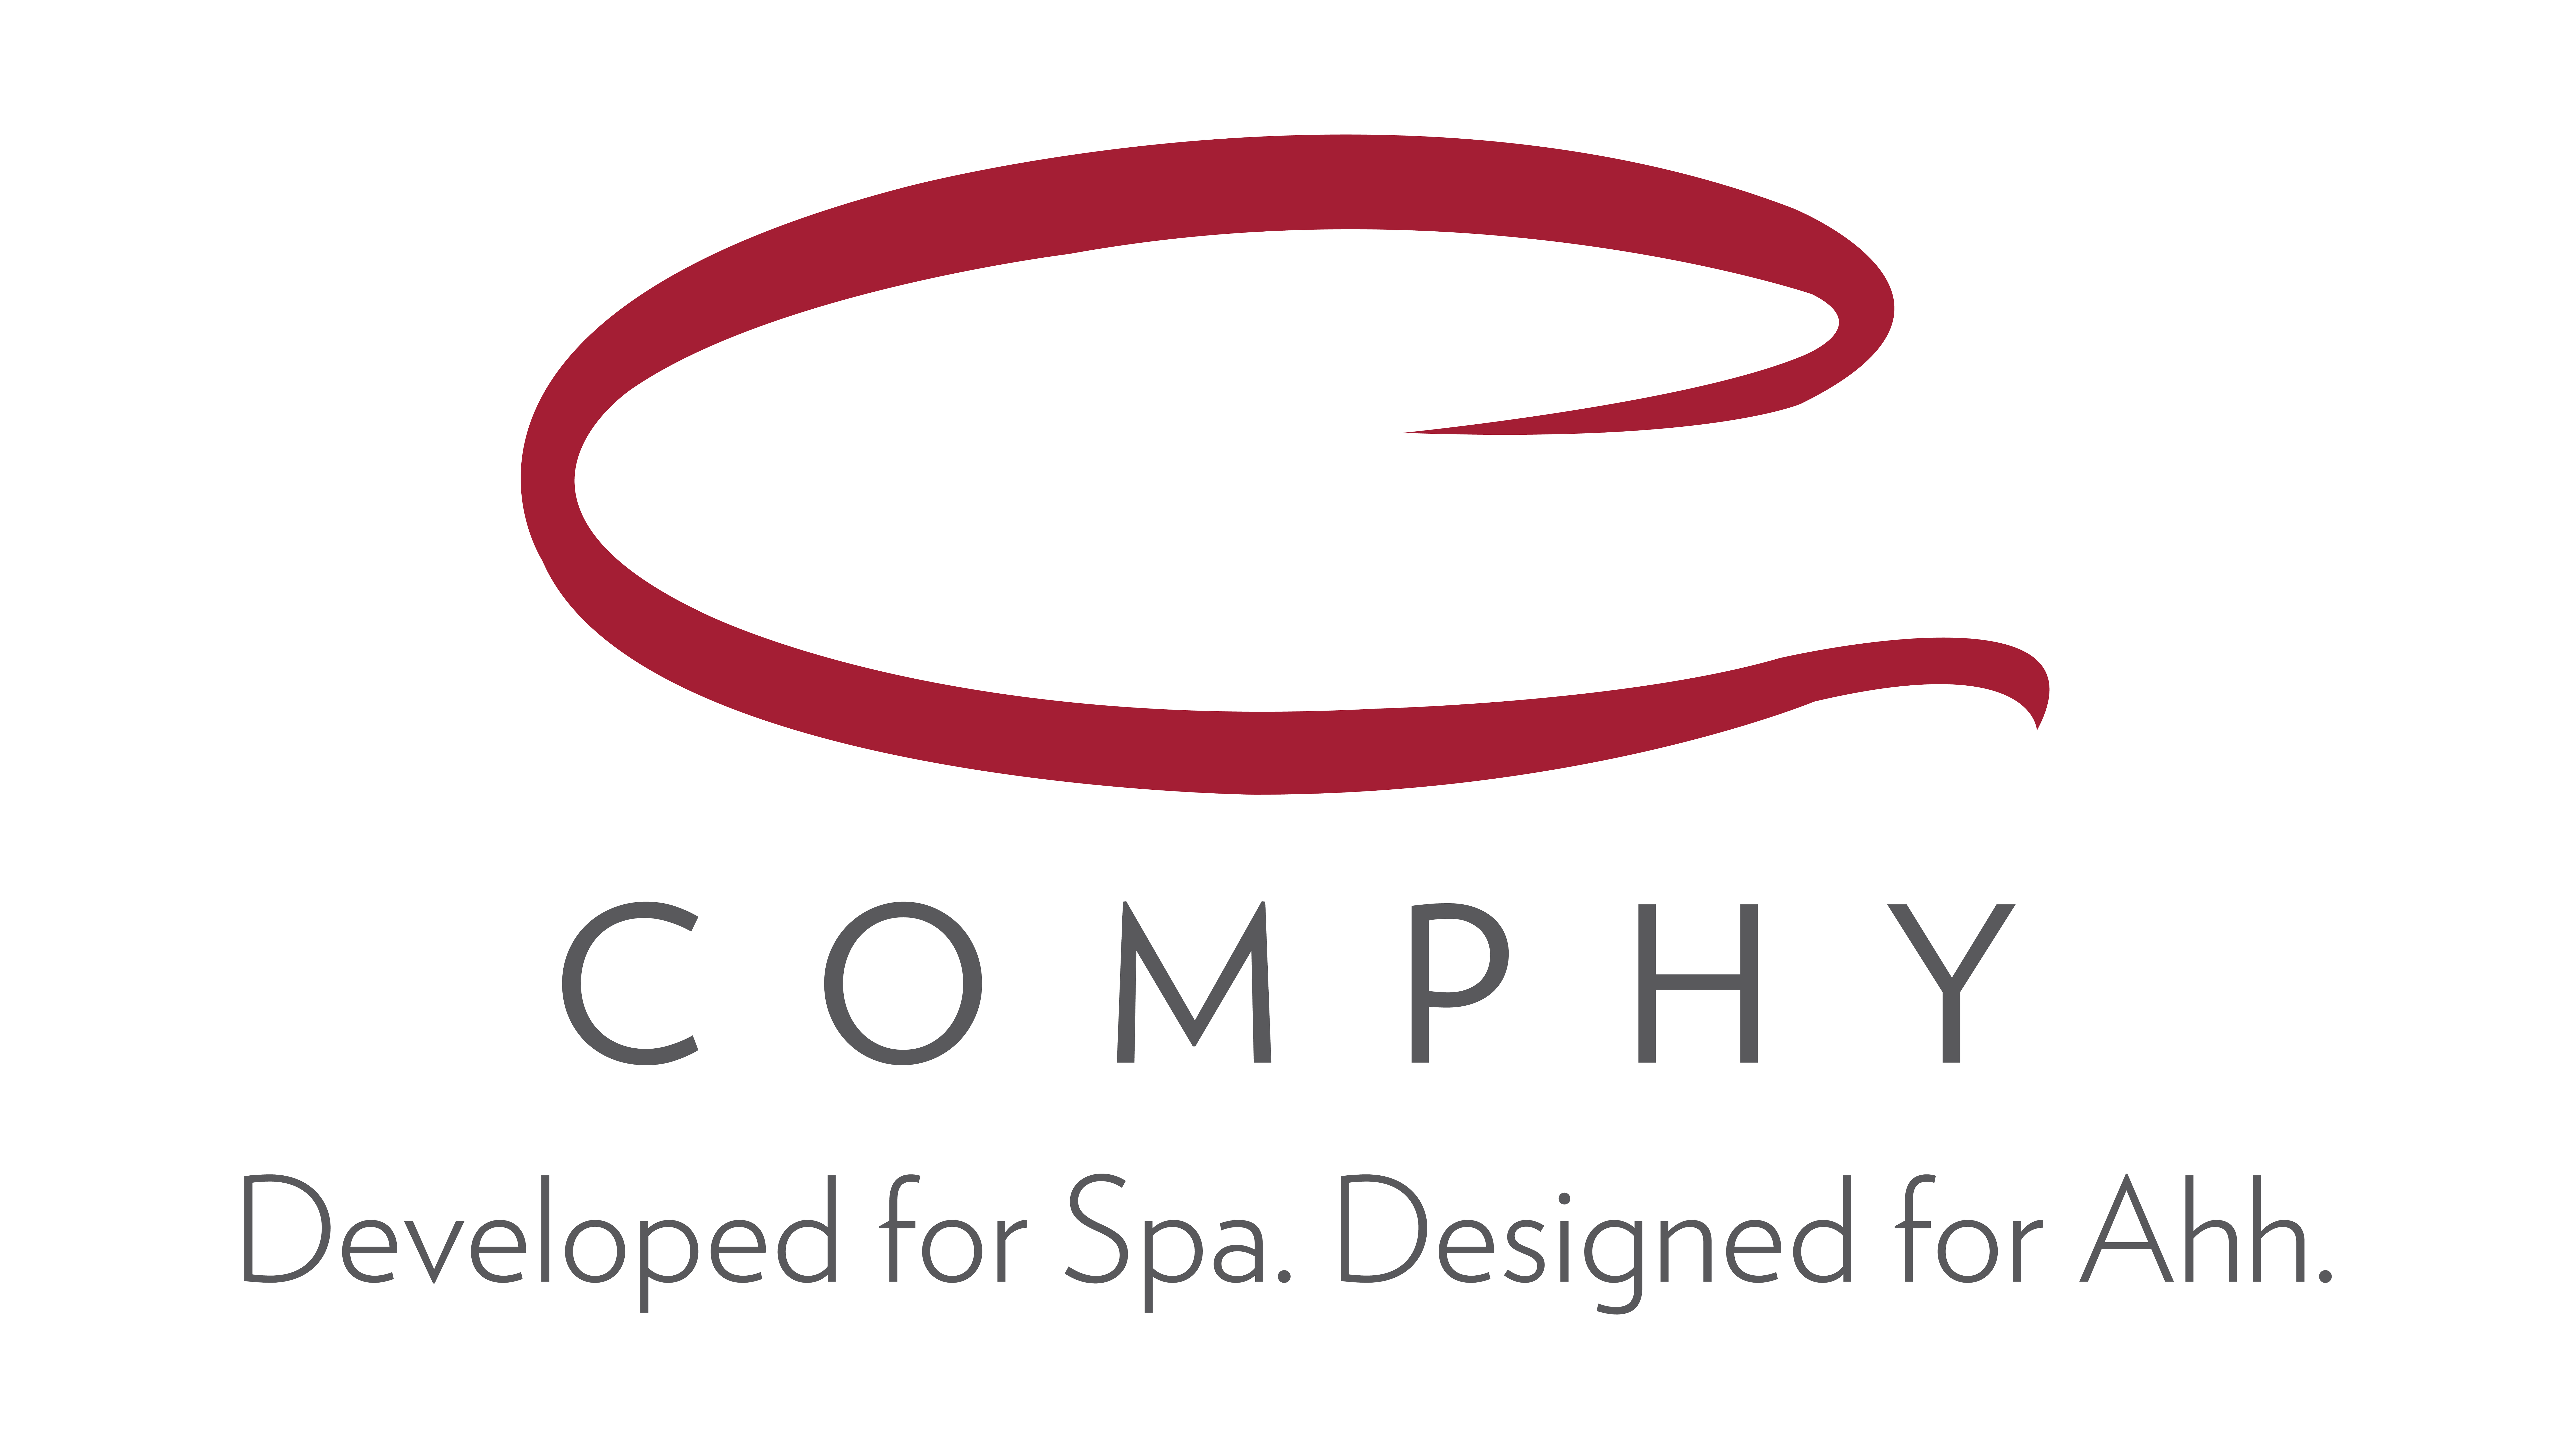 Comphy Co